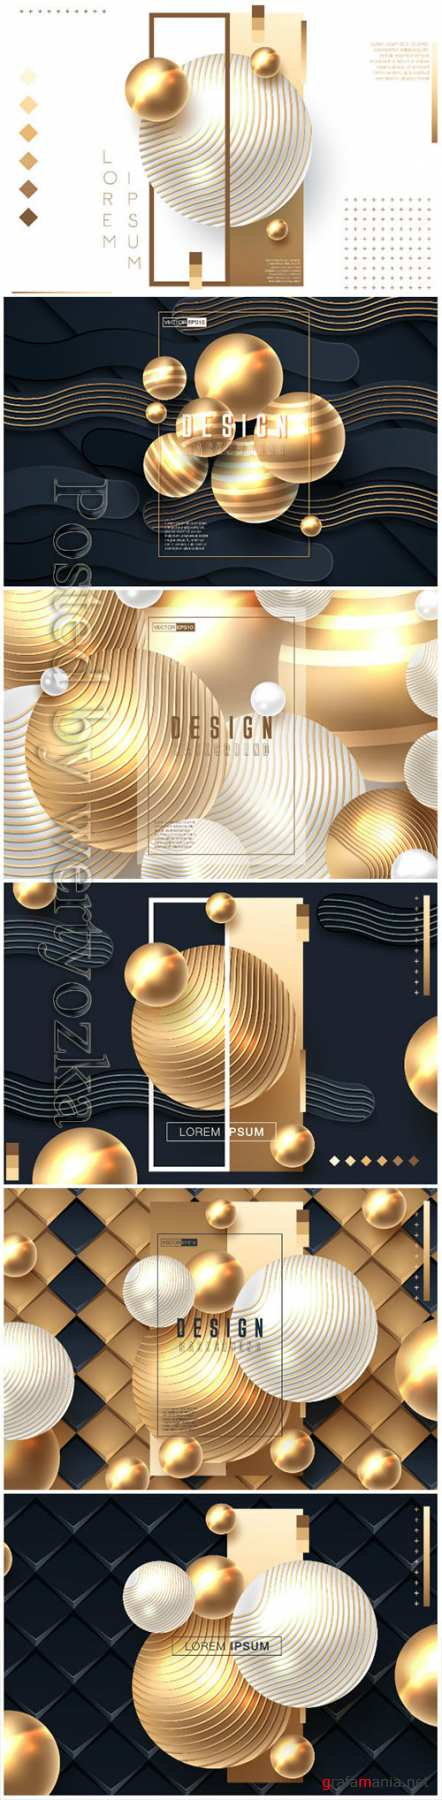 Abstract background with spheres in gold and black color